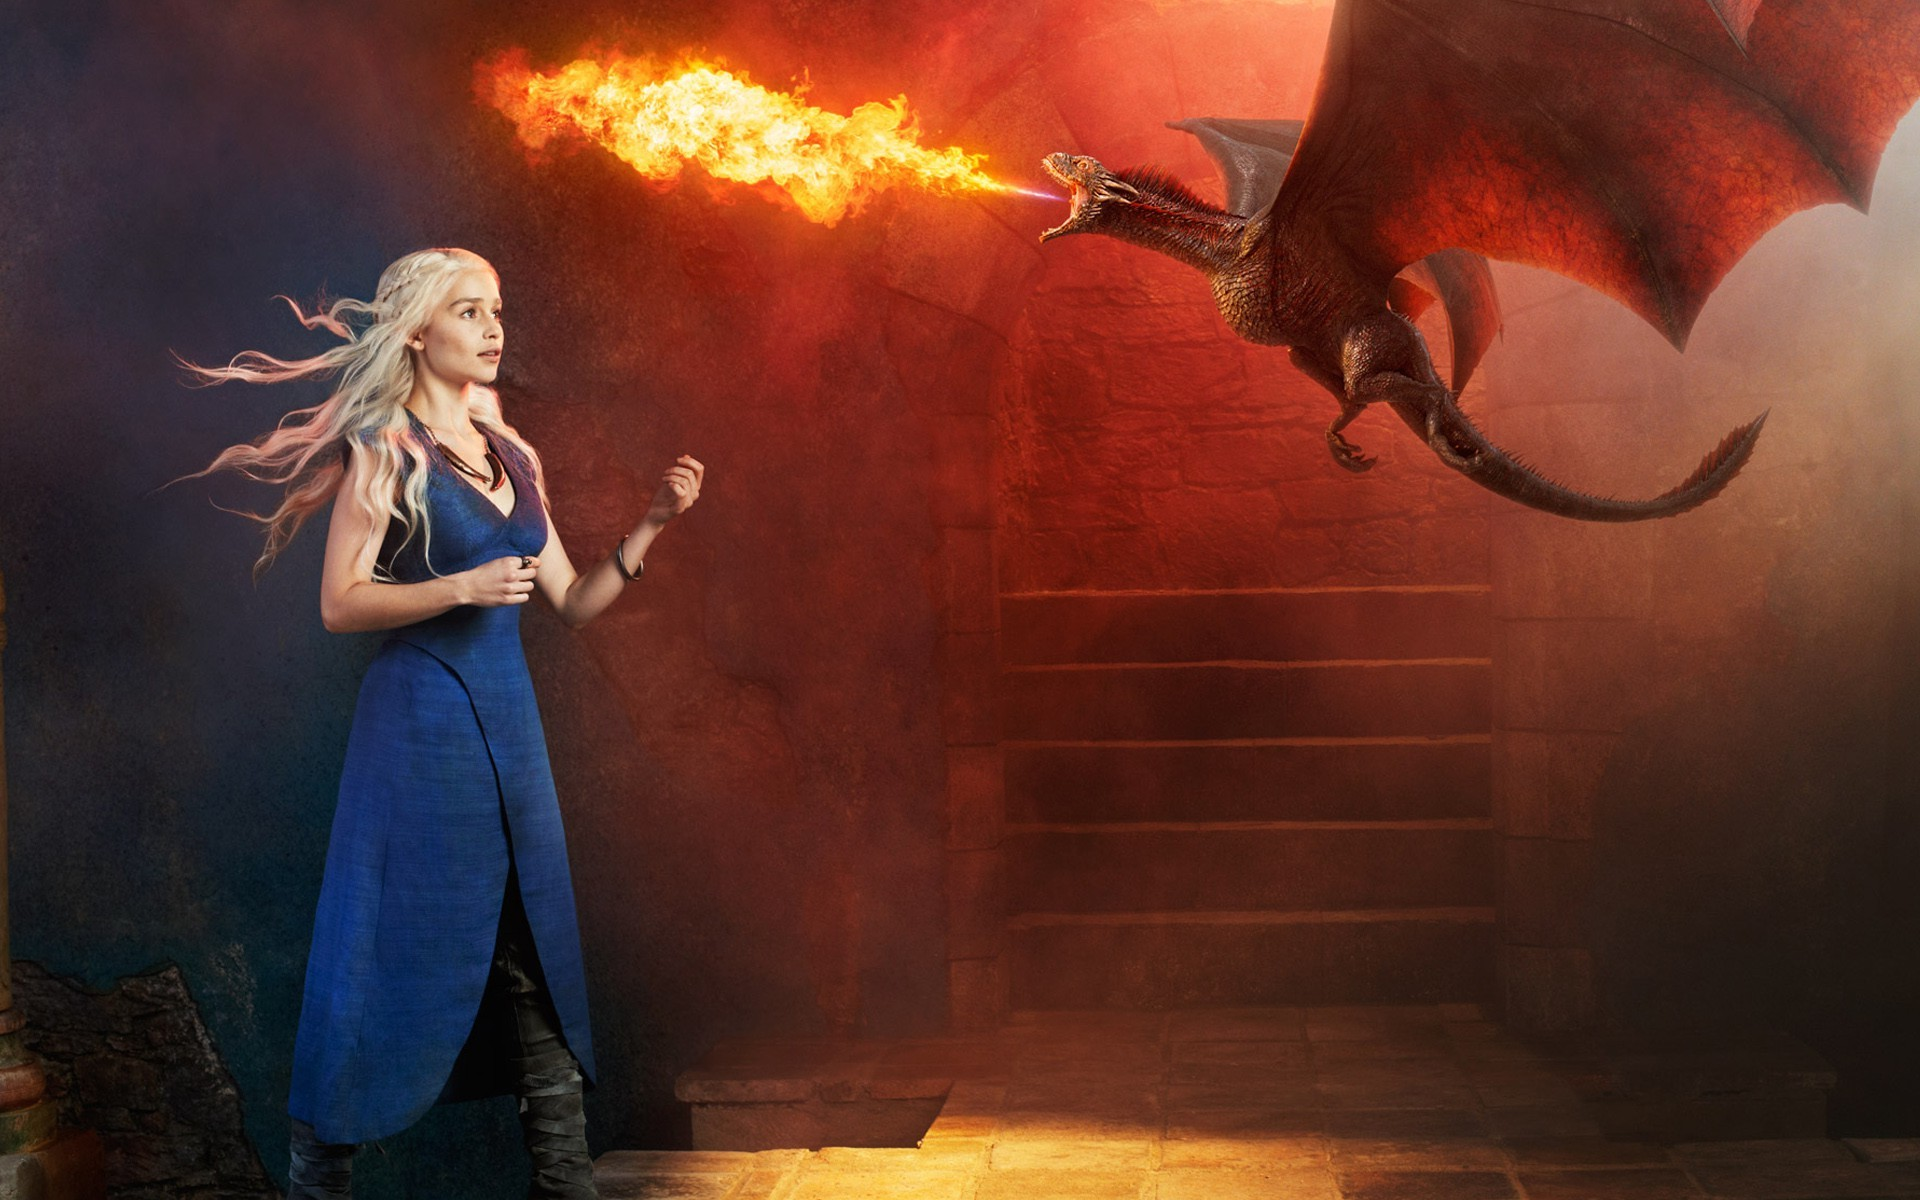 Emilia Clarke Game Of Thrones Daenerys Targaryen   Daenerys 1920x1200